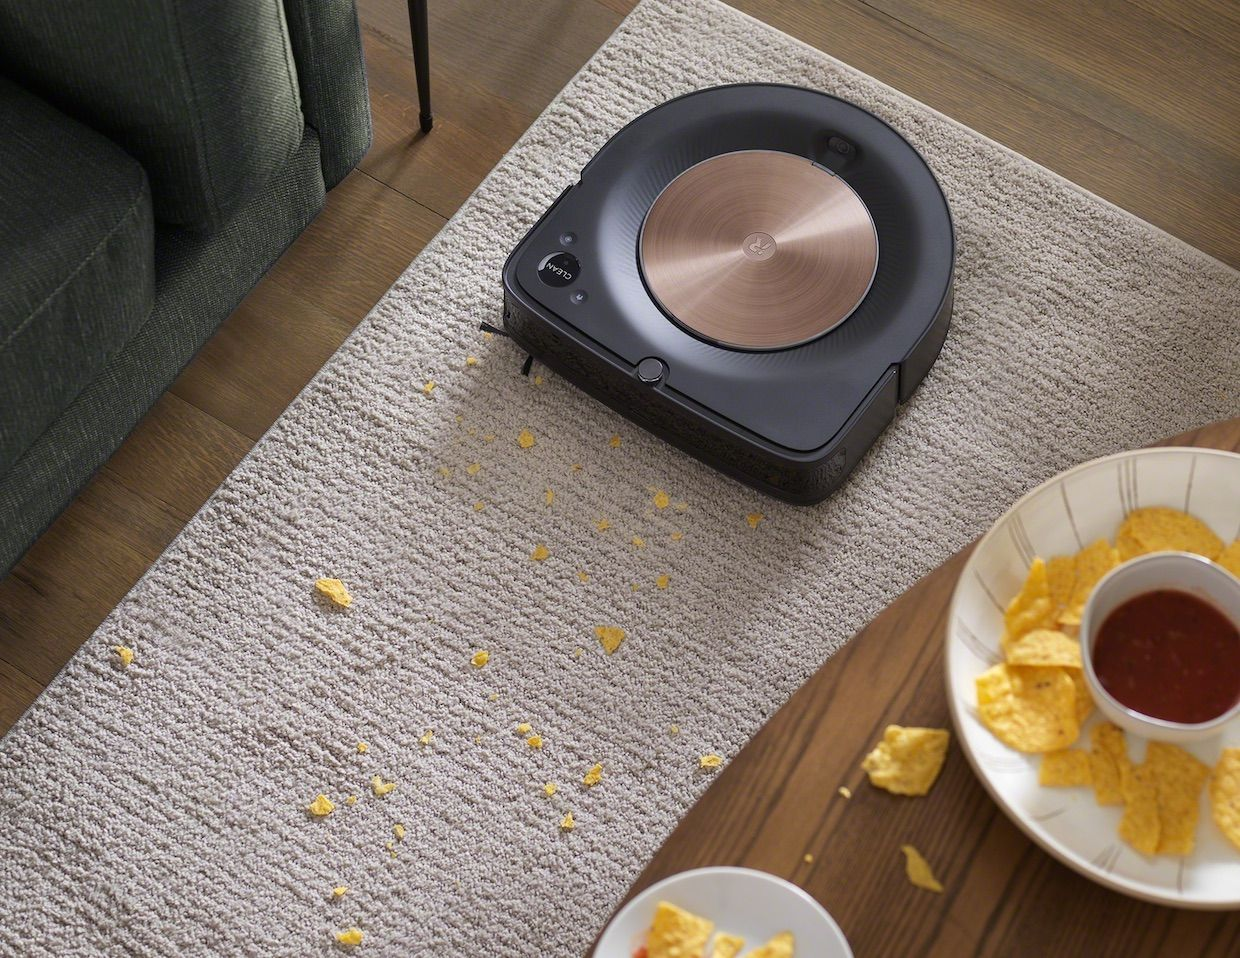 Roomba cleaning a carpet